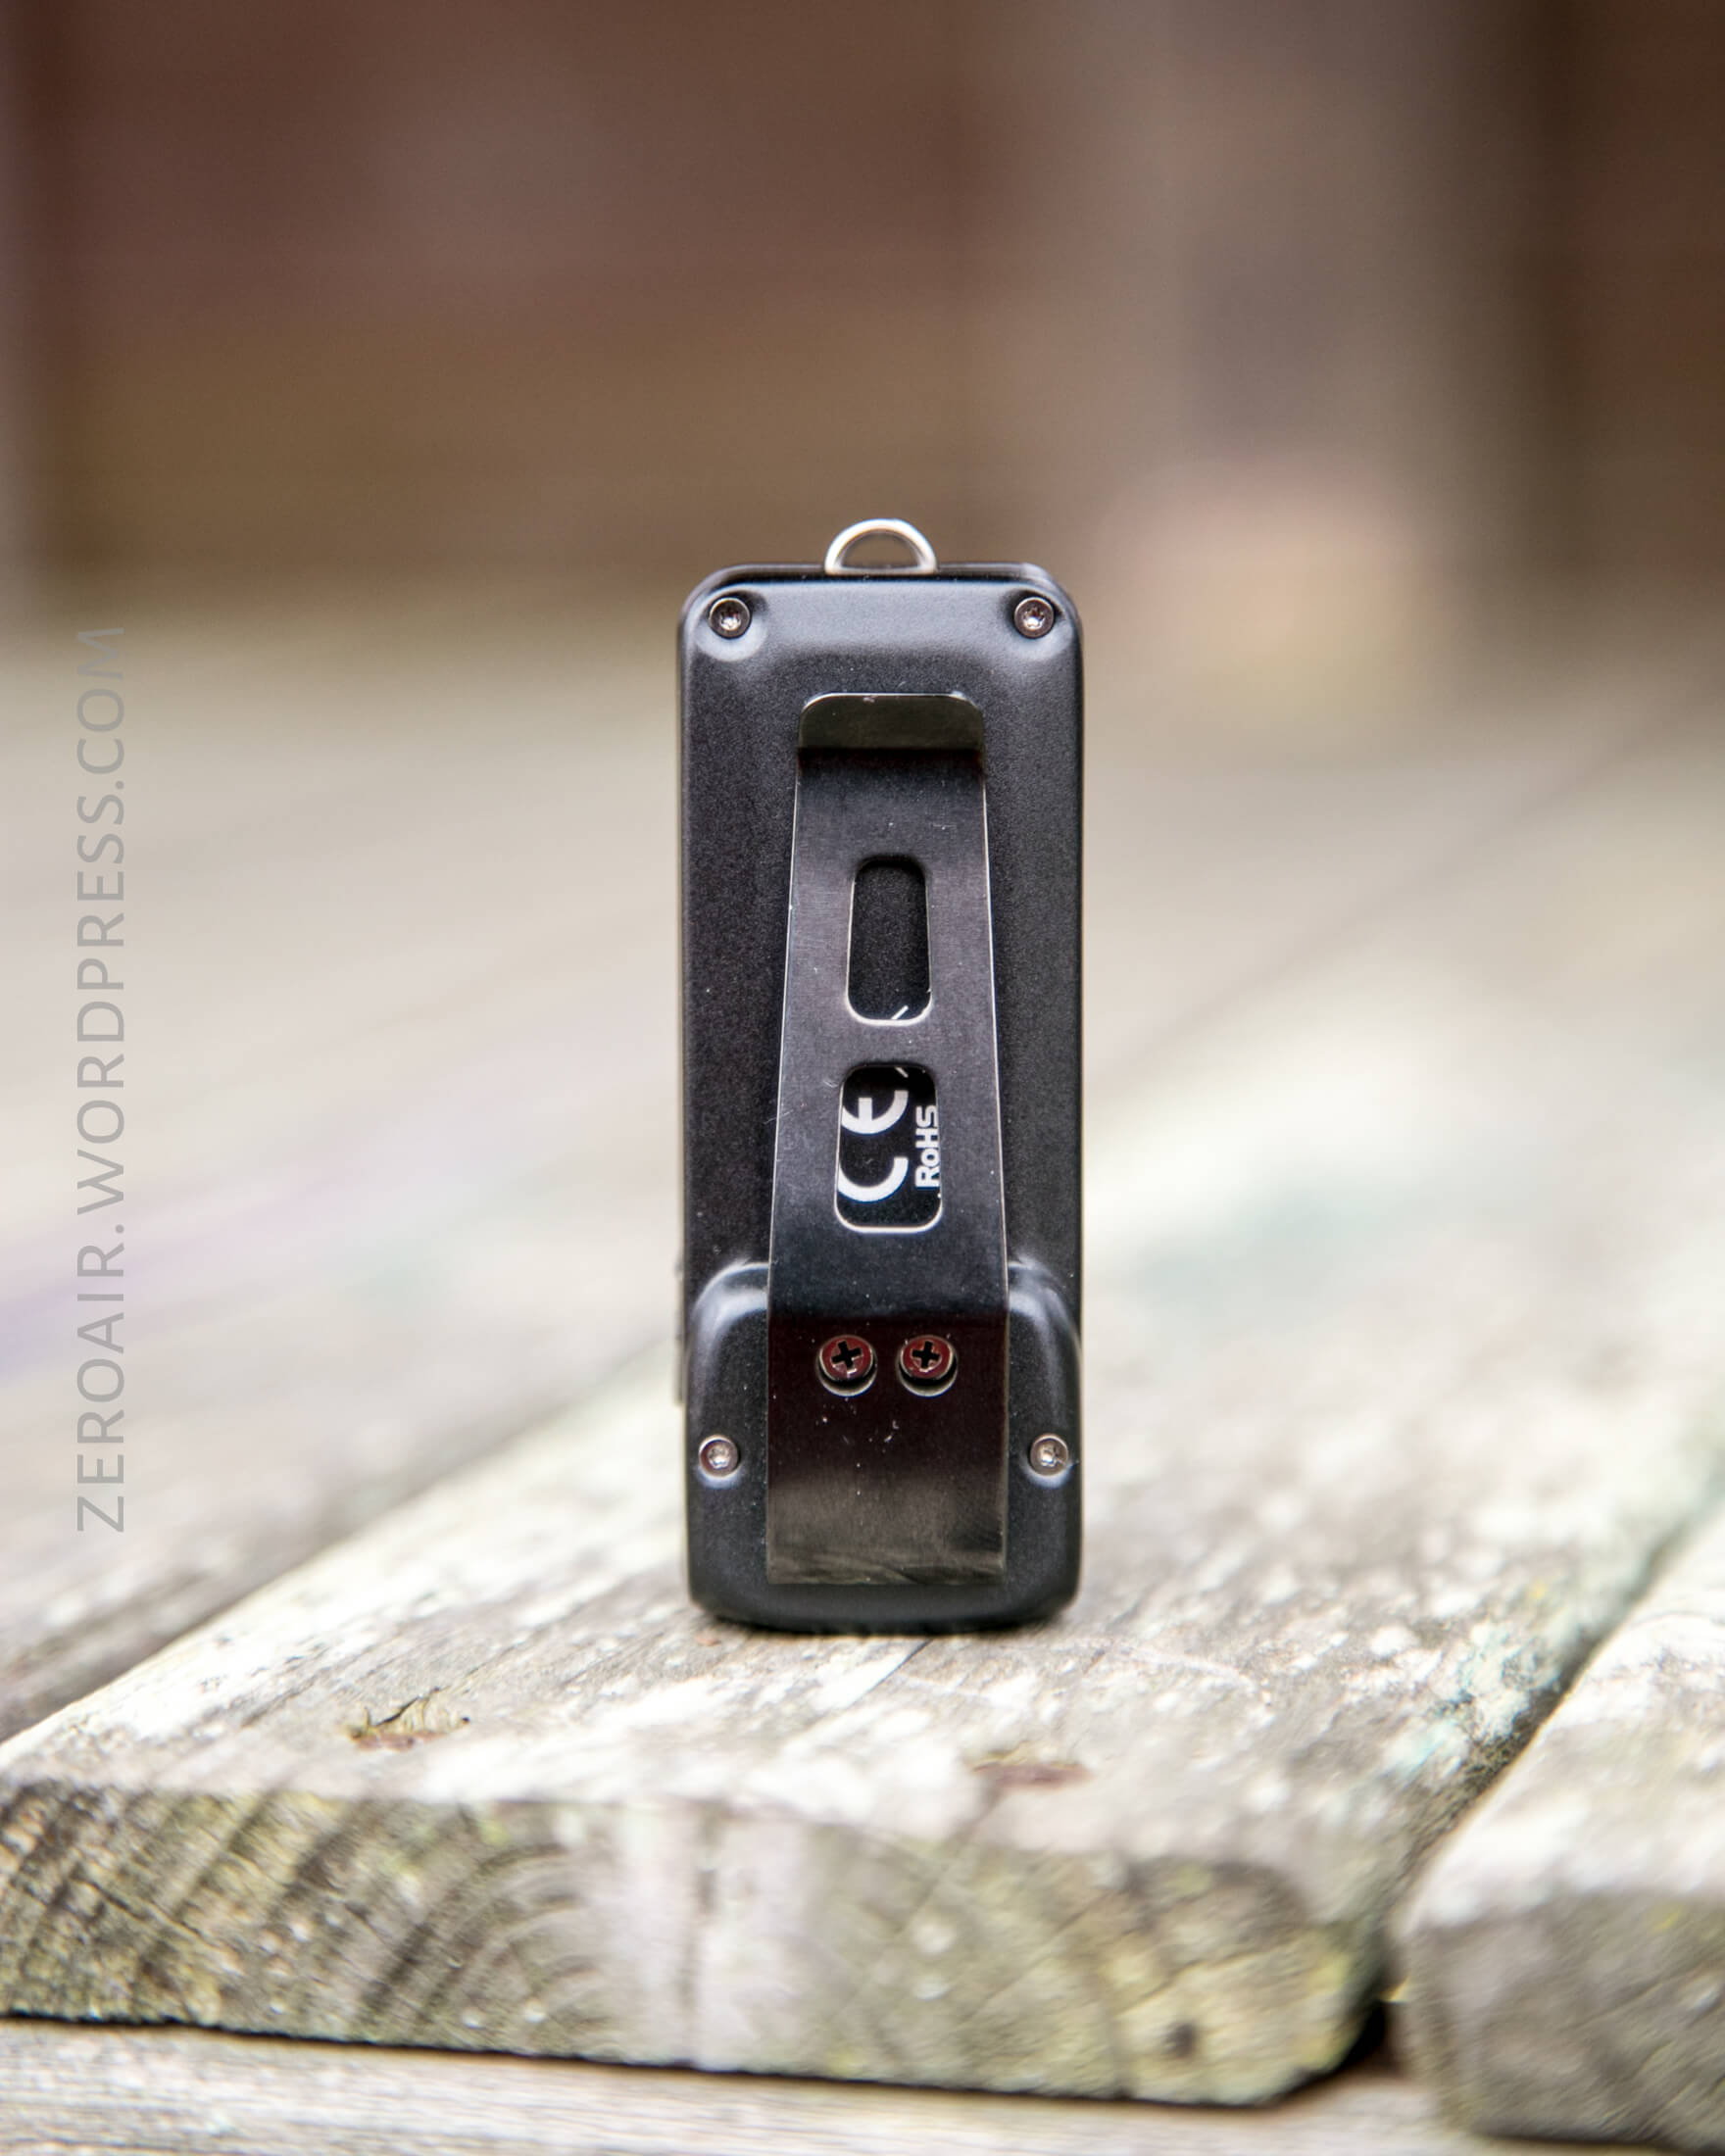 zeroair_reviews_nitecore_tup_17